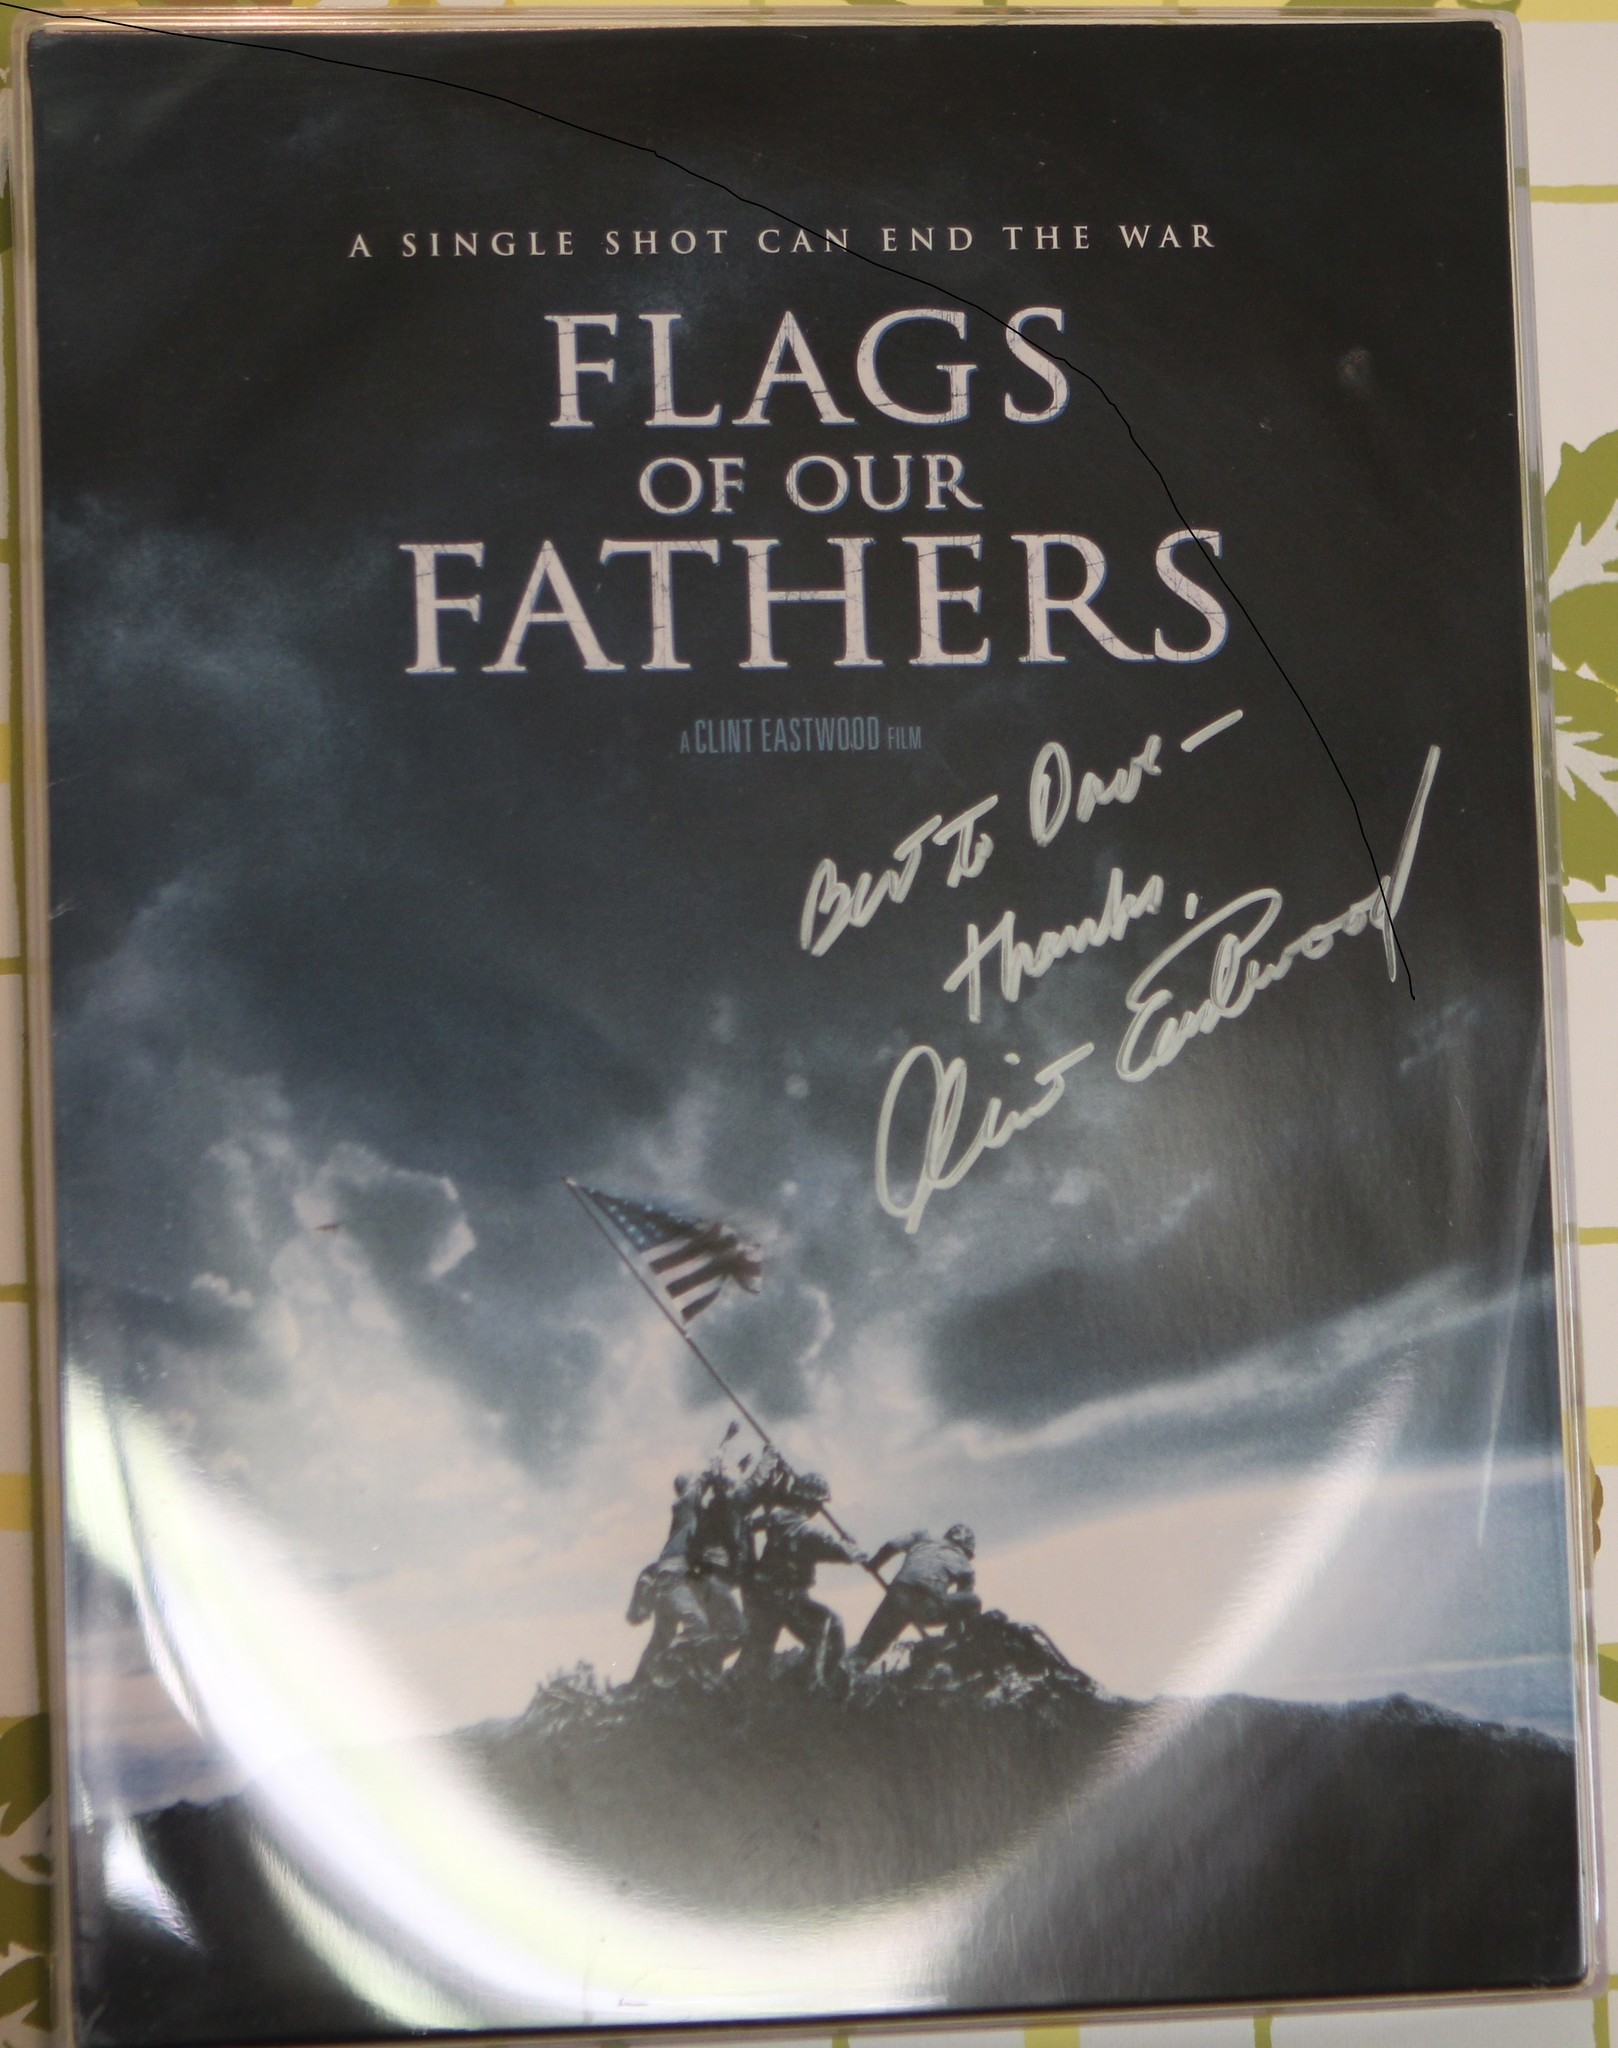 Clint Eastwood autographed this copy of the 'Flags of Our Fathers' movie poster to Severance, who is portrayed in the film.